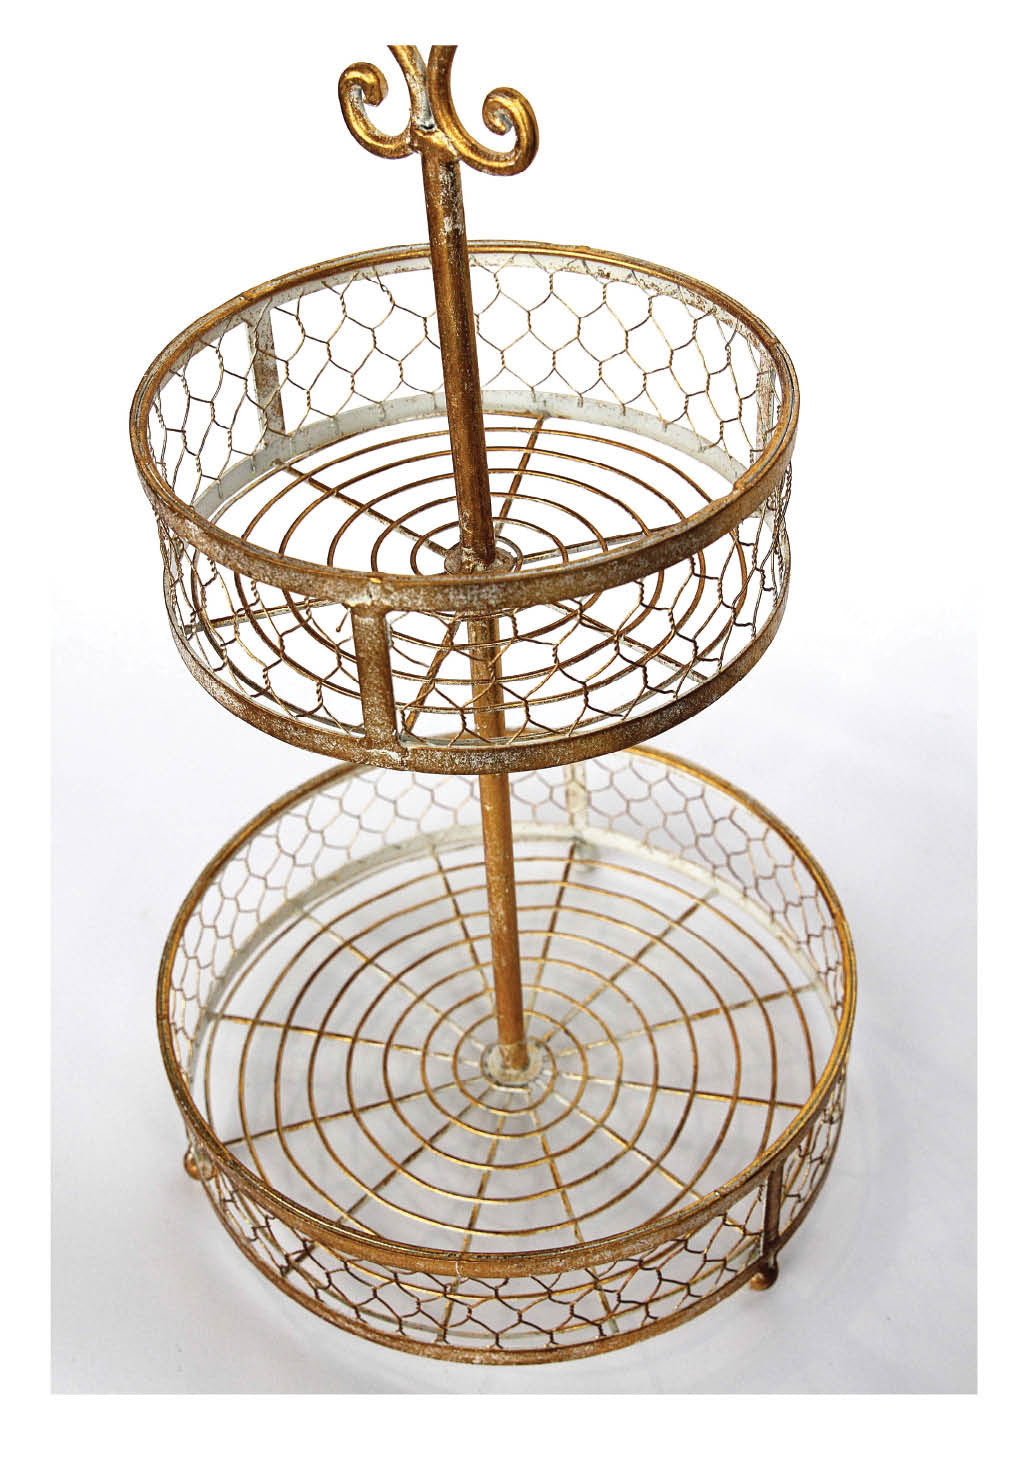 2-Tier Basket in Rust Gold